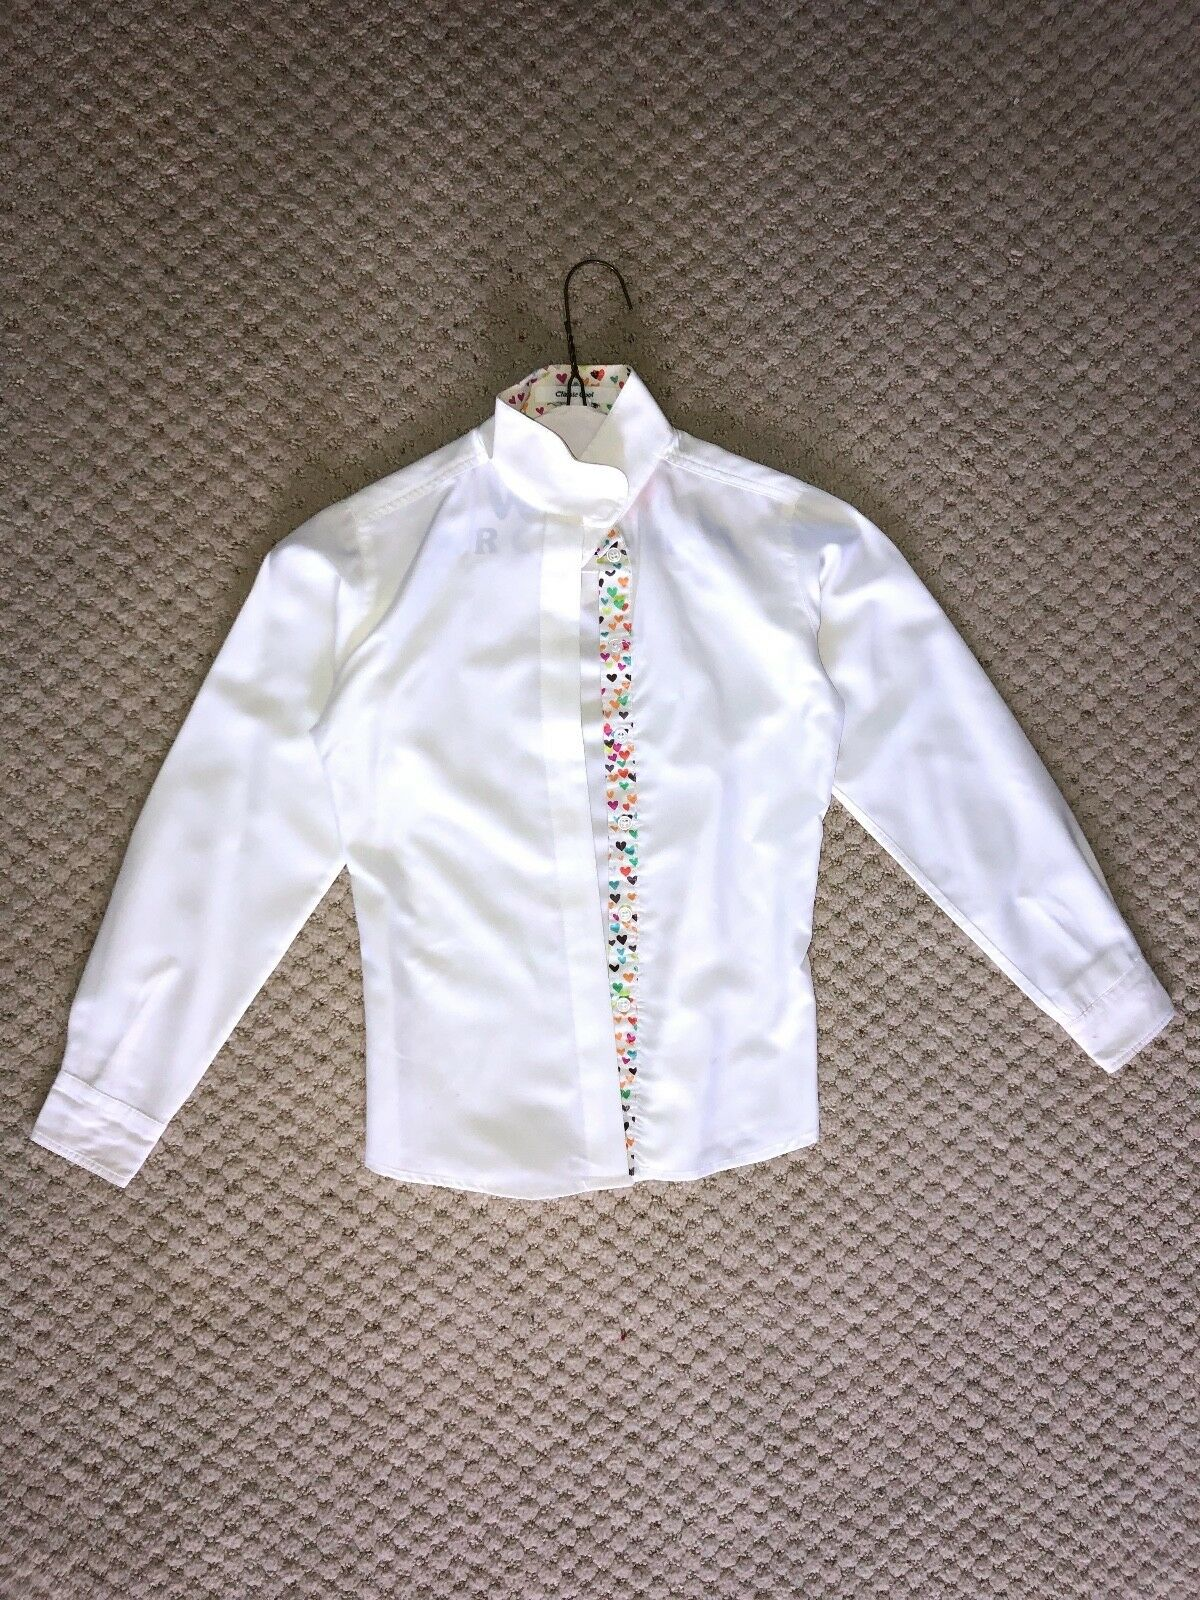 R.J. classics prestige collection girls show  shirt white  save 60% discount and fast shipping worldwide